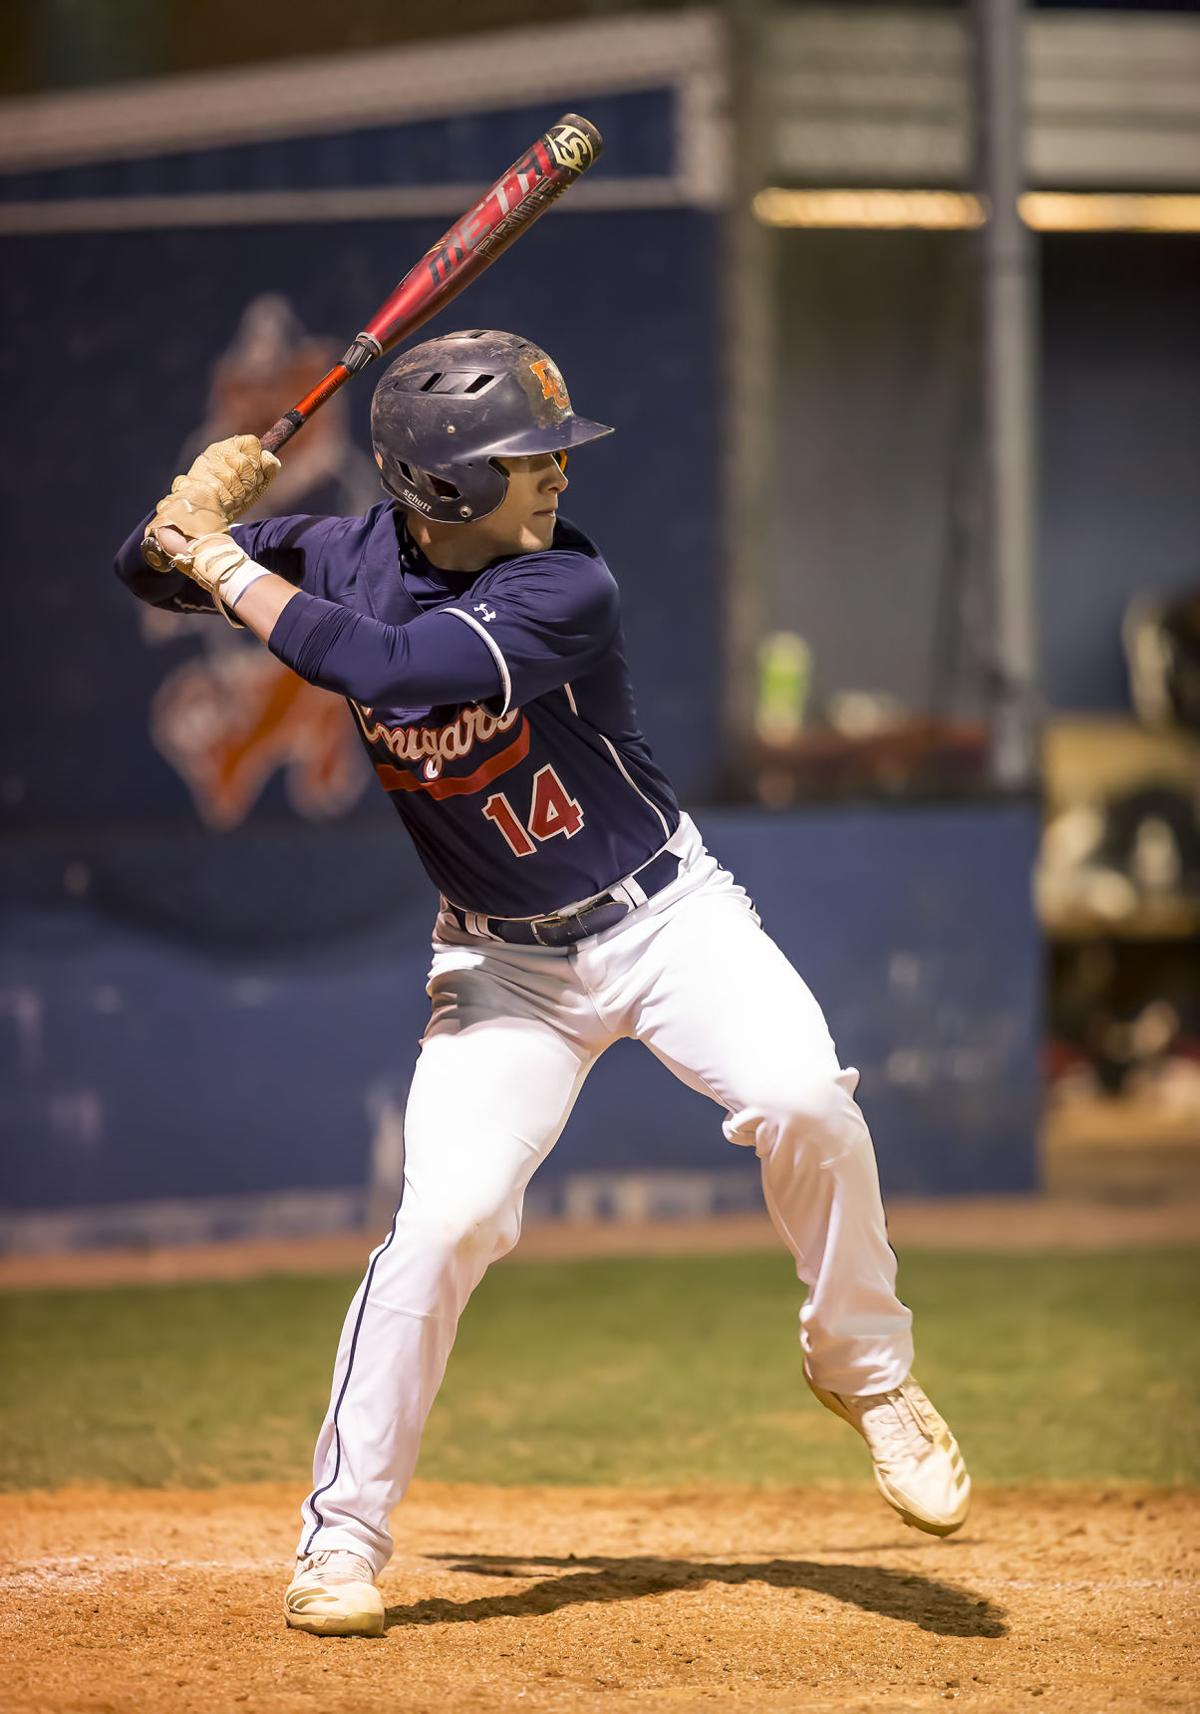 Dickson County's Tucker Berry had two RBIs in an 8-3 victory over Centennial. Howard Tuffy Abell / Mid Tenn Sports